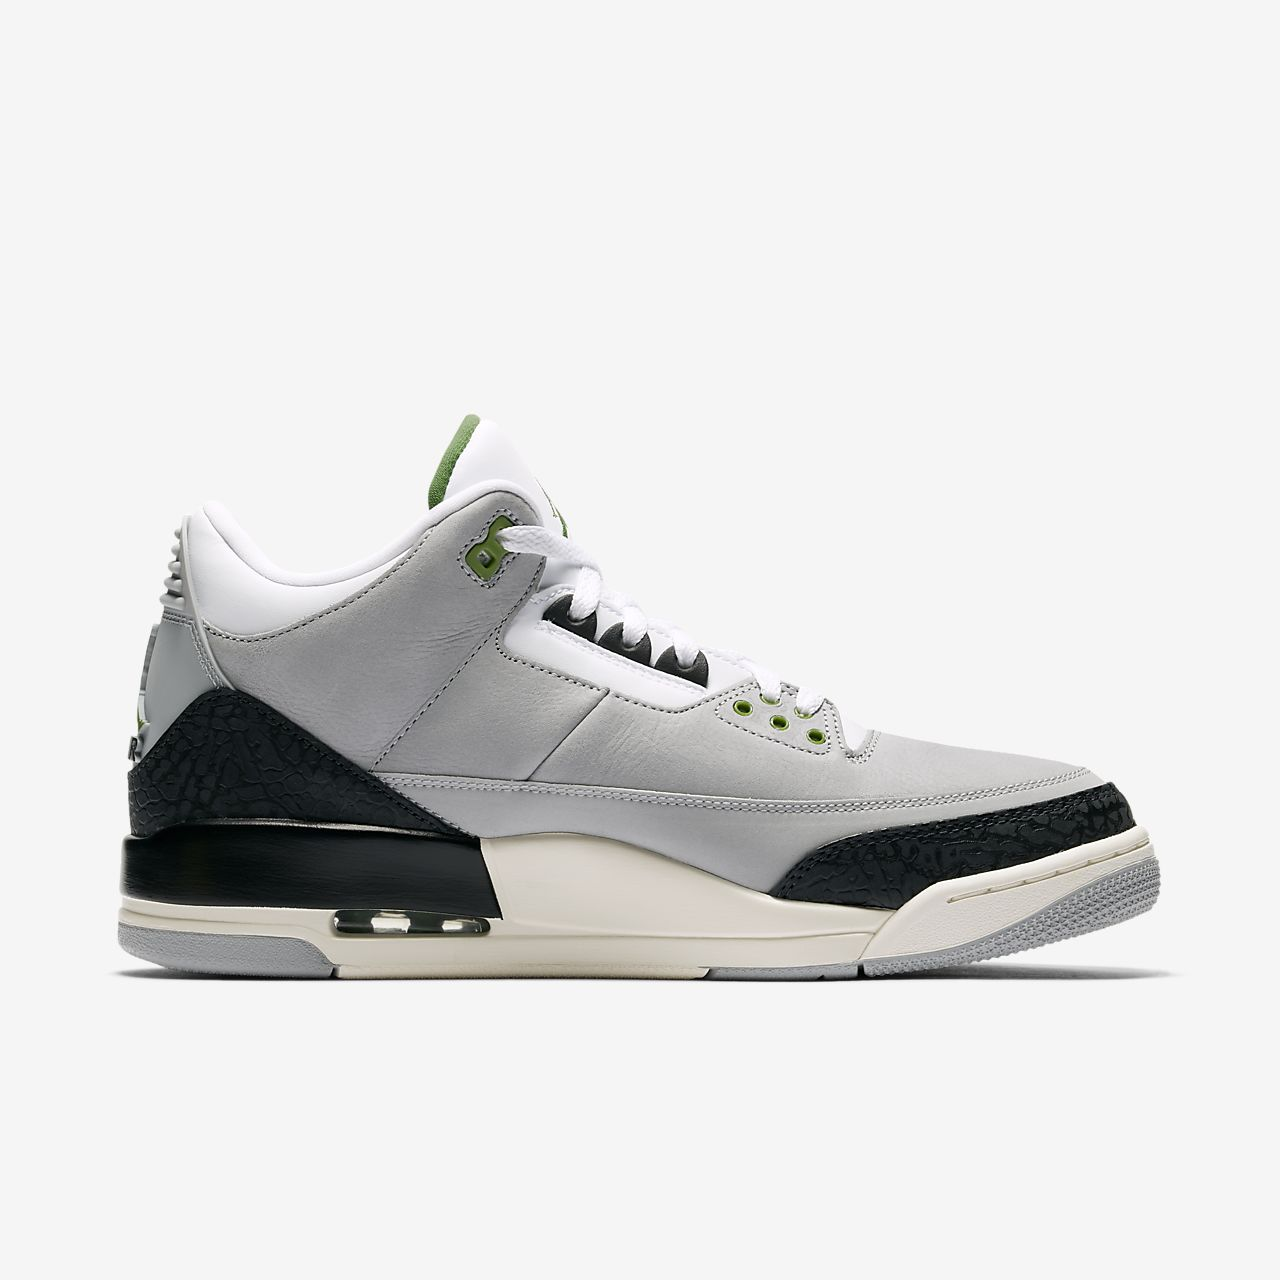 91919549e8a Air Jordan 3 Retro Men's Shoe. Nike.com GB